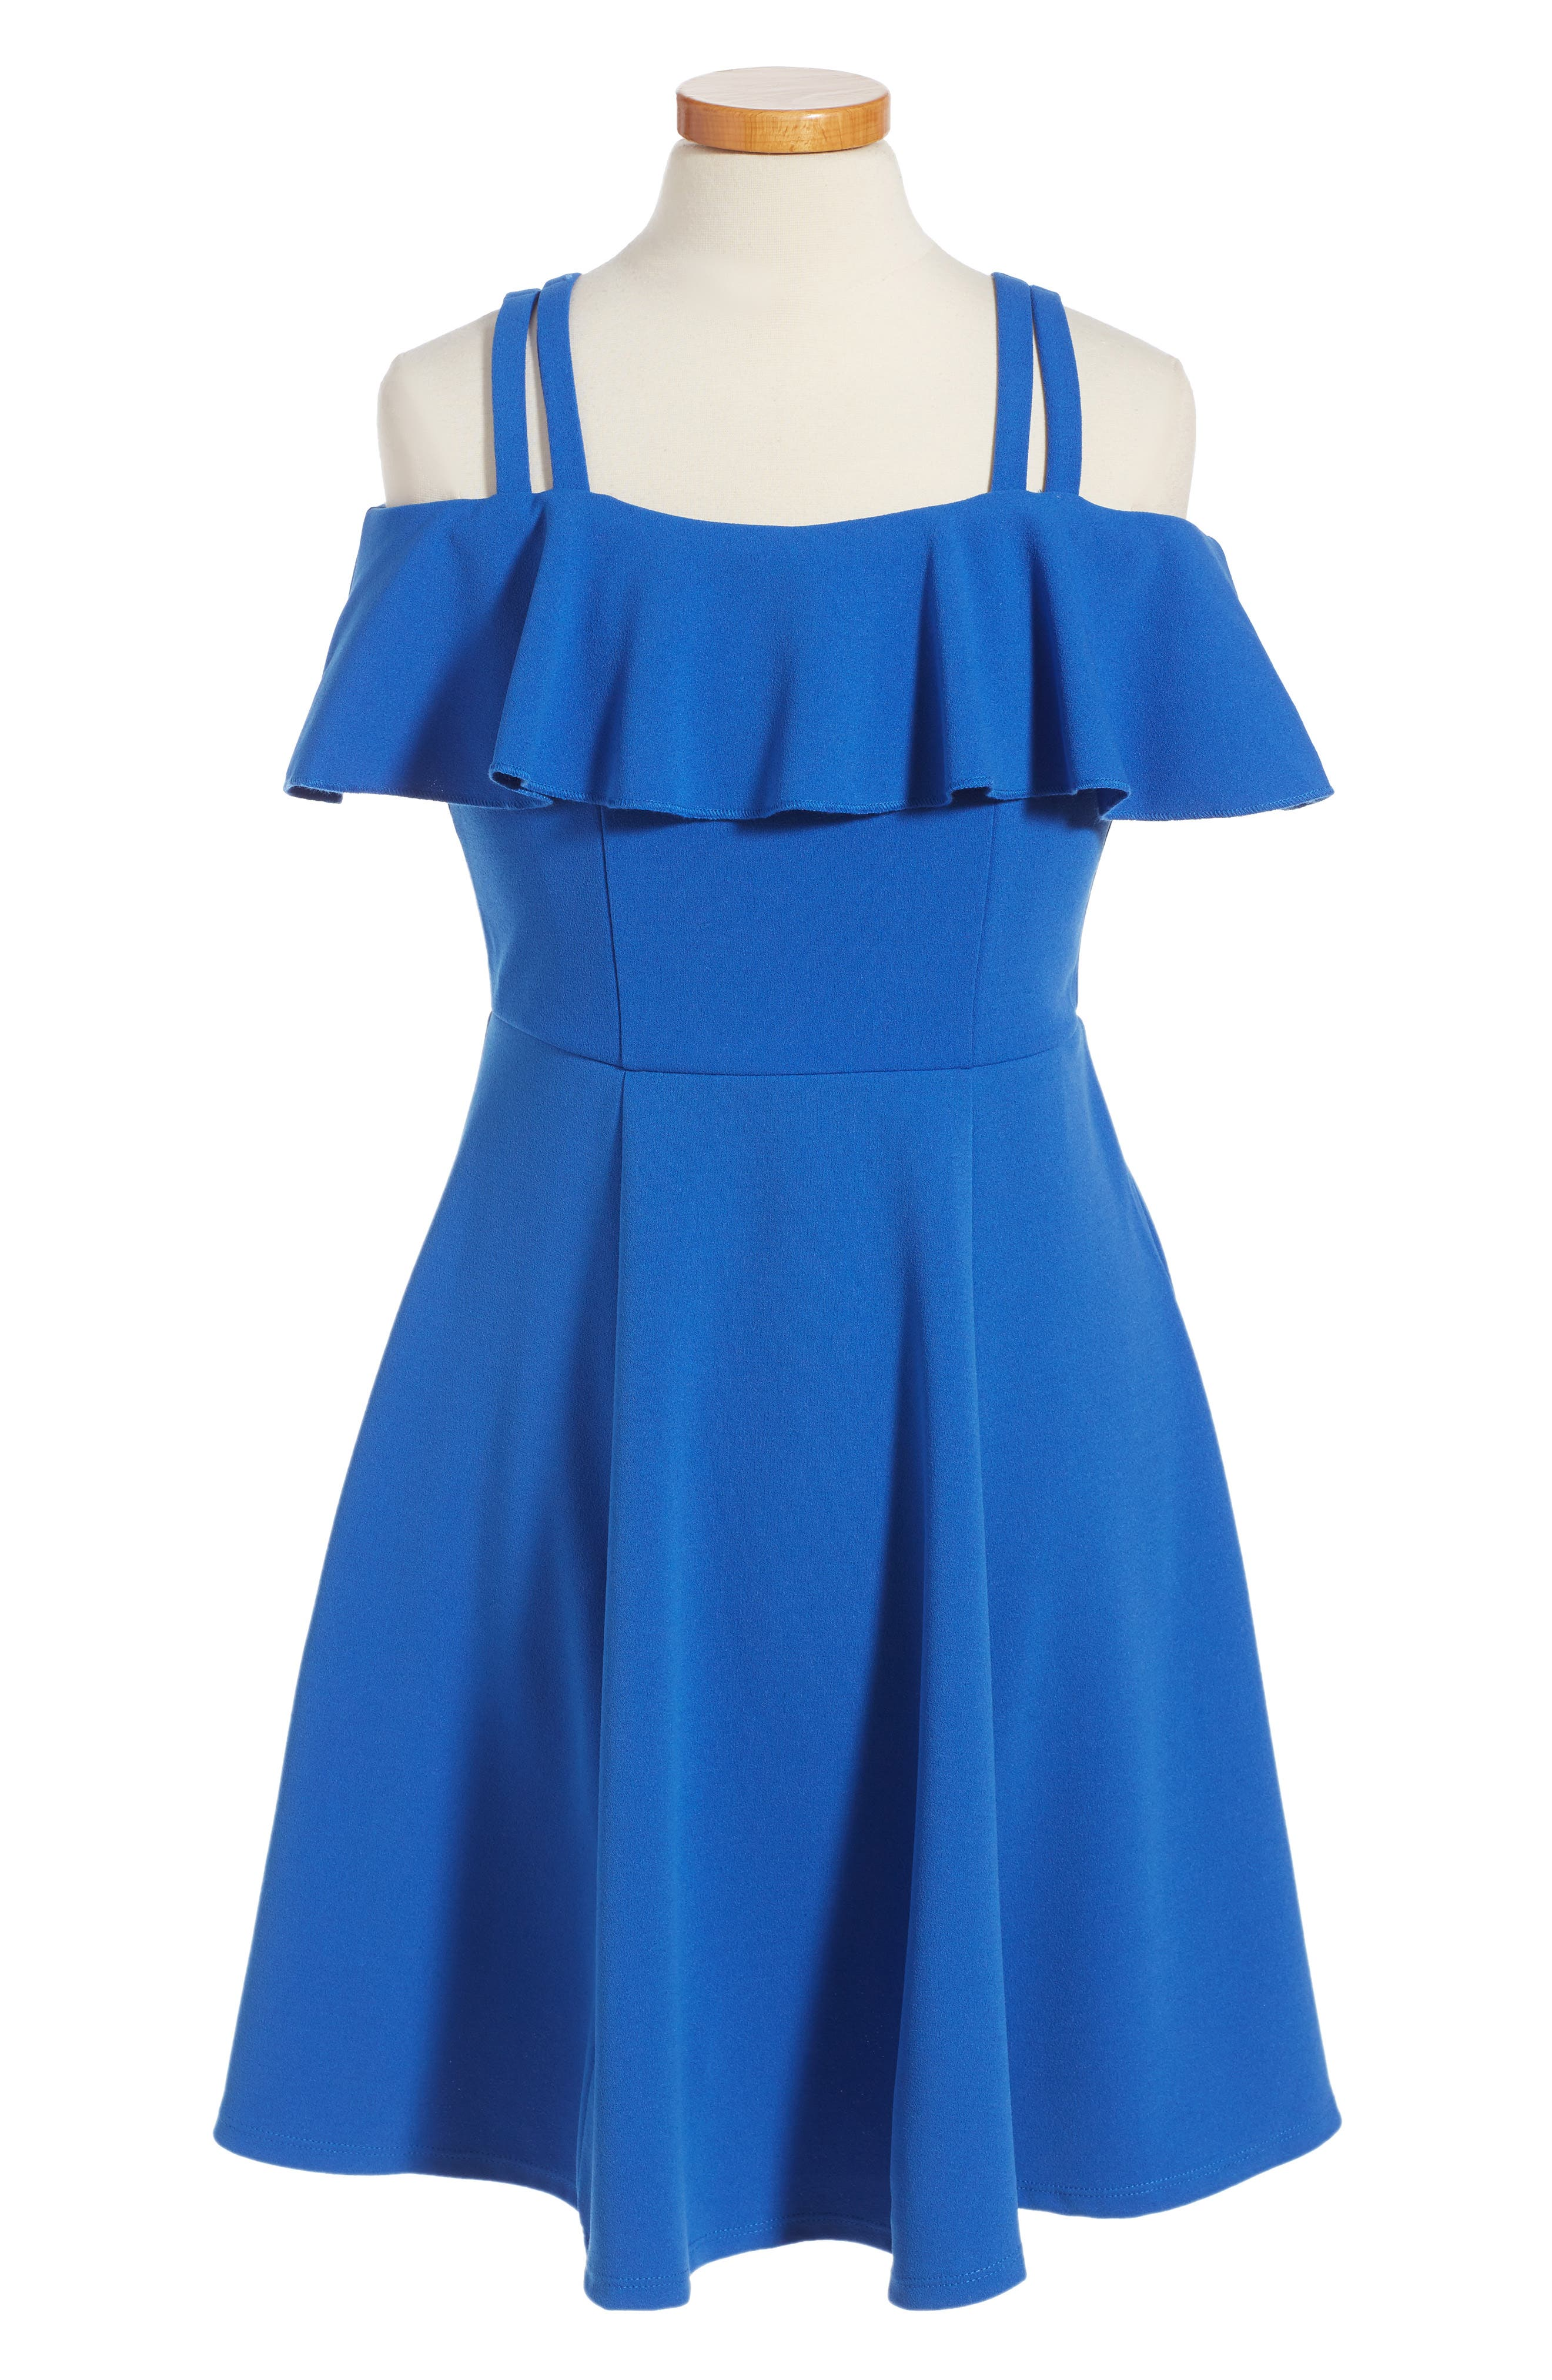 Alternate Image 1 Selected - Love, Nickie Lew Off the Shoulder Ruffle Dress (Big Girls)